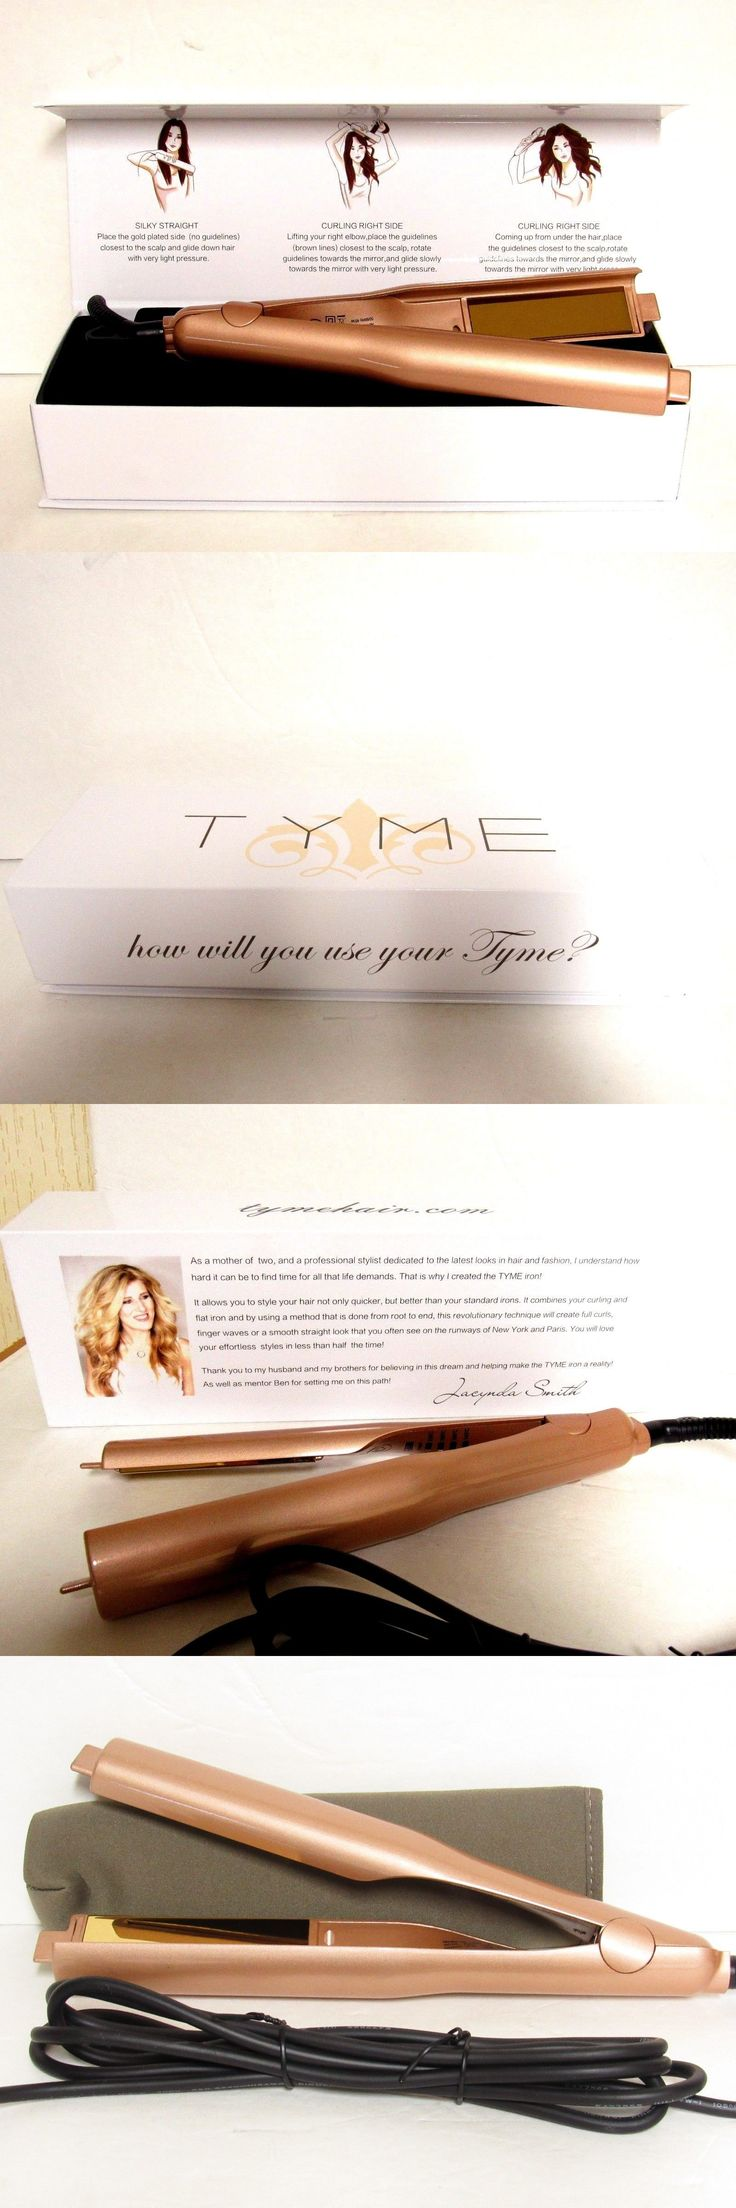 Straightening and Curling Irons: New In Box - Tyme Gold Plated Titanium Hair Straightening Curling Iron -> BUY IT NOW ONLY: $134.87 on eBay!